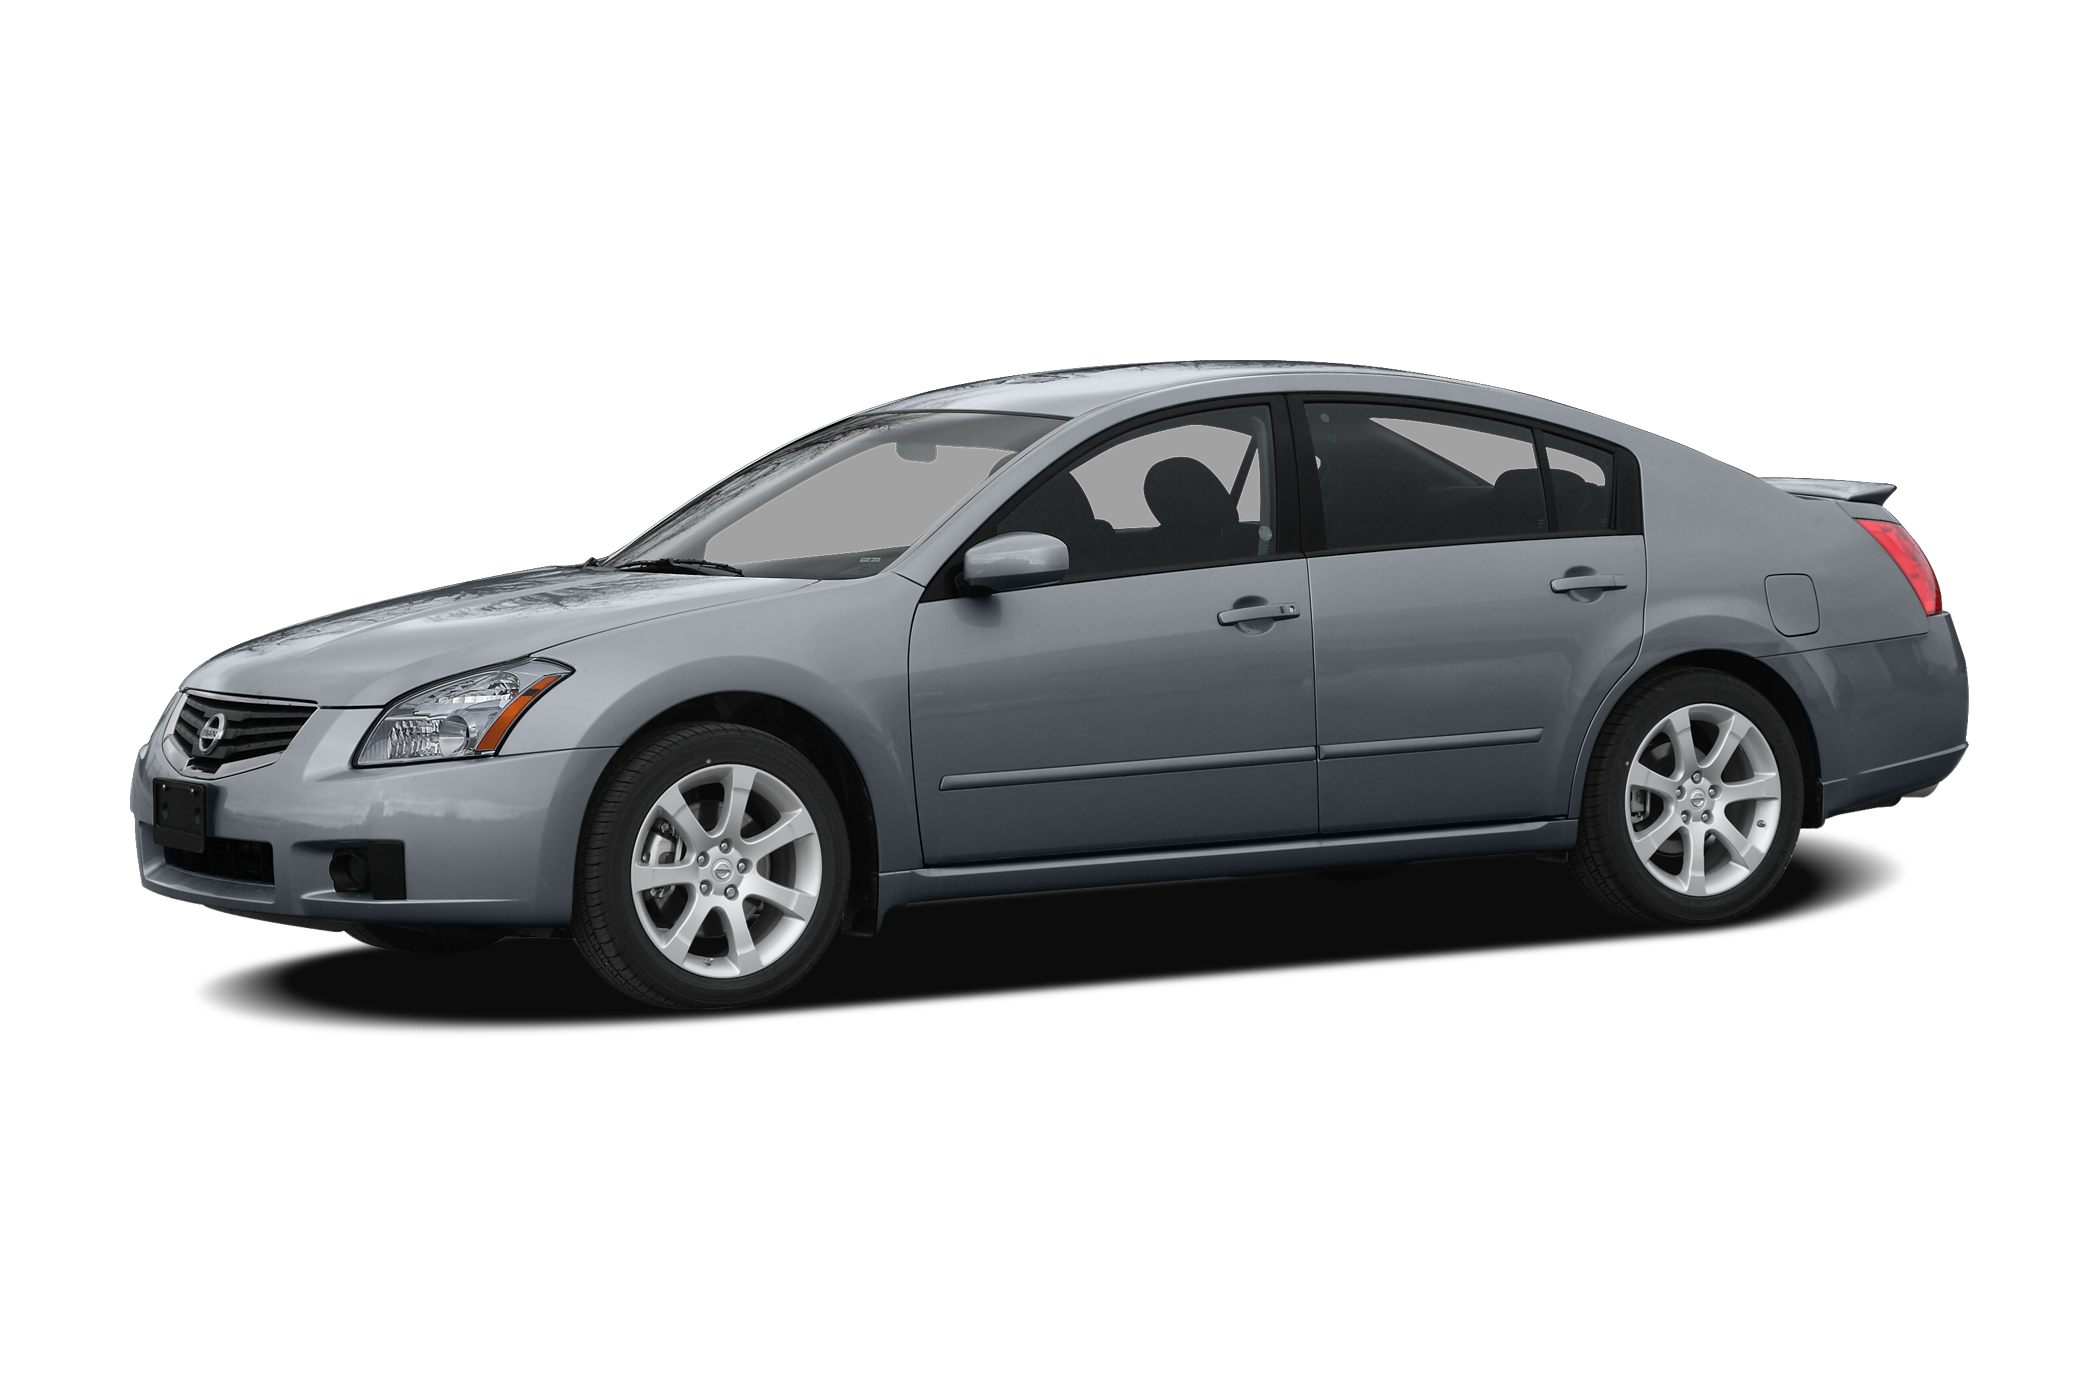 2007 Nissan Maxima SL Sedan for sale in Jacksonville for $11,991 with 29,853 miles.